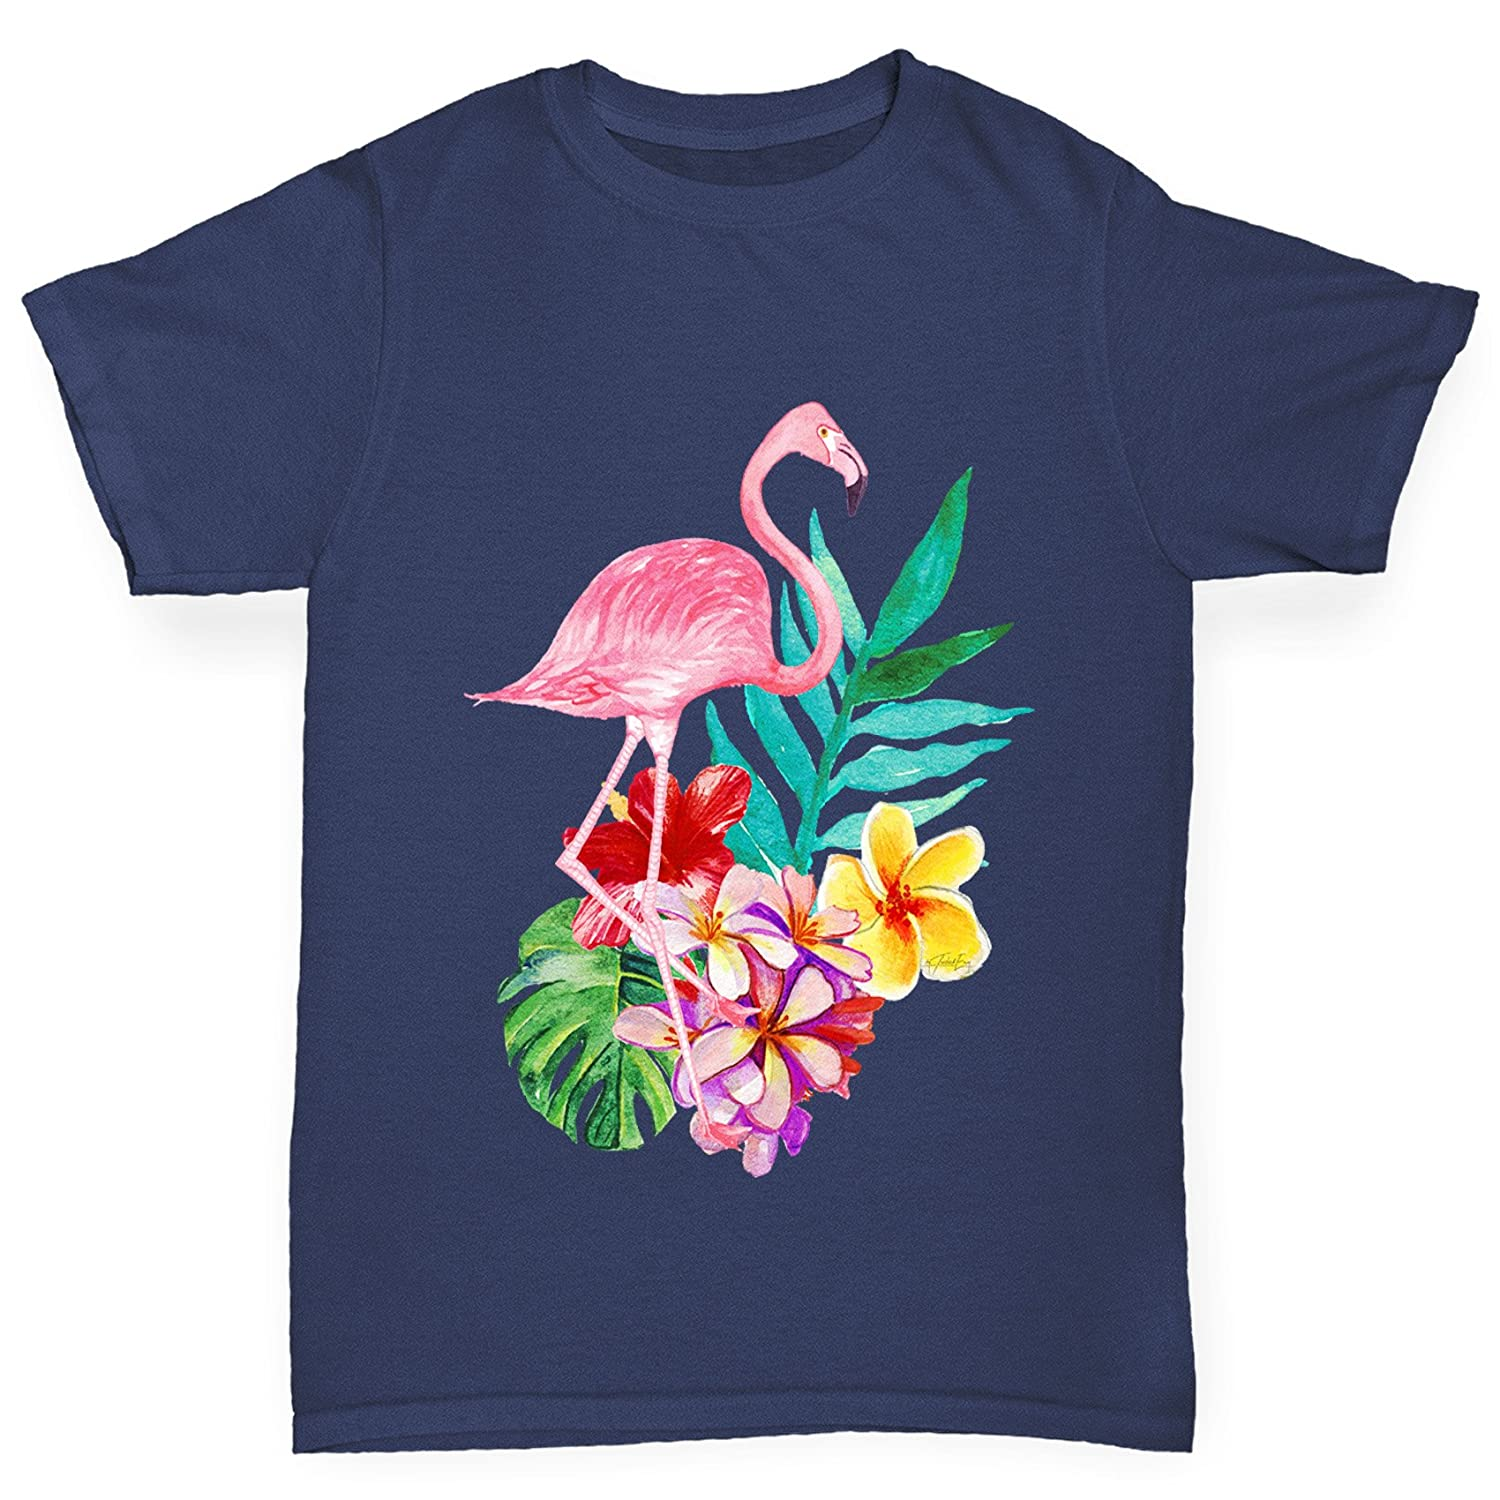 TWISTED ENVY Watercolour Flamingo Flowers Girl's Funny Cotton T-Shirt,  Comfortable and Soft Classic Tee with Unique Design: Amazon.co.uk: Clothing